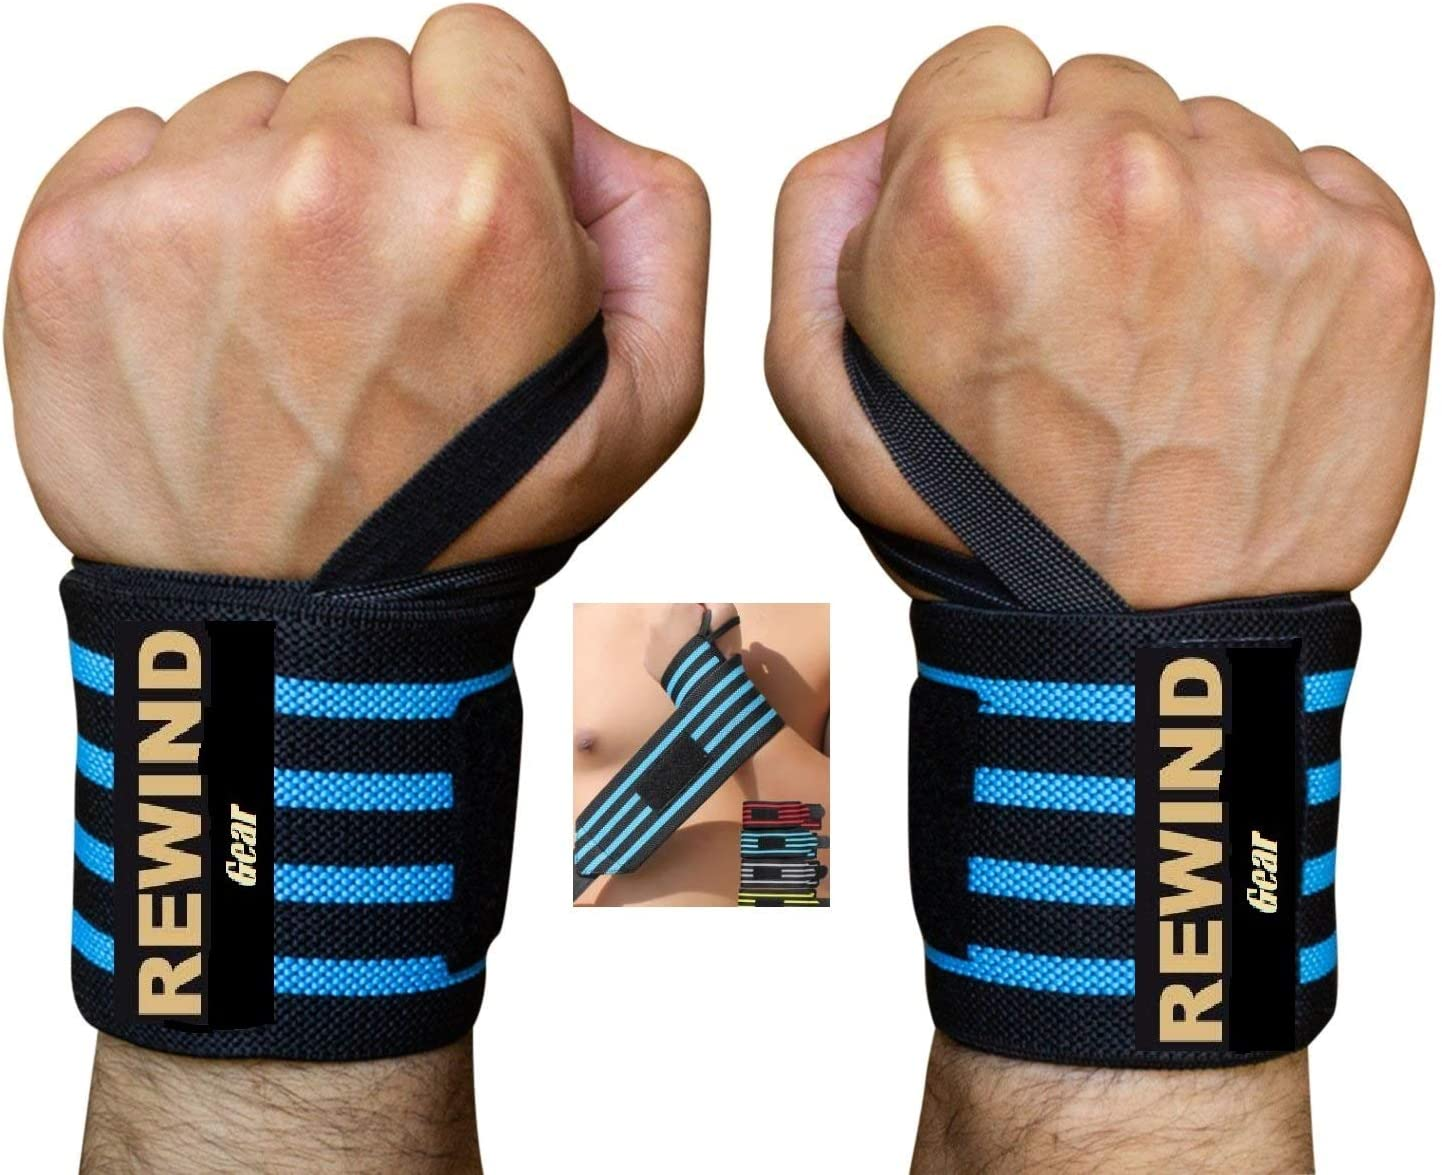 Wrist Wraps Bands Lifting Straps Gym Work Out Weightlifting, Cross Training Workout Powerlifting Bodybuilding - Support for Men Women Teens Prevents Injury while Weight Lifting -Pair